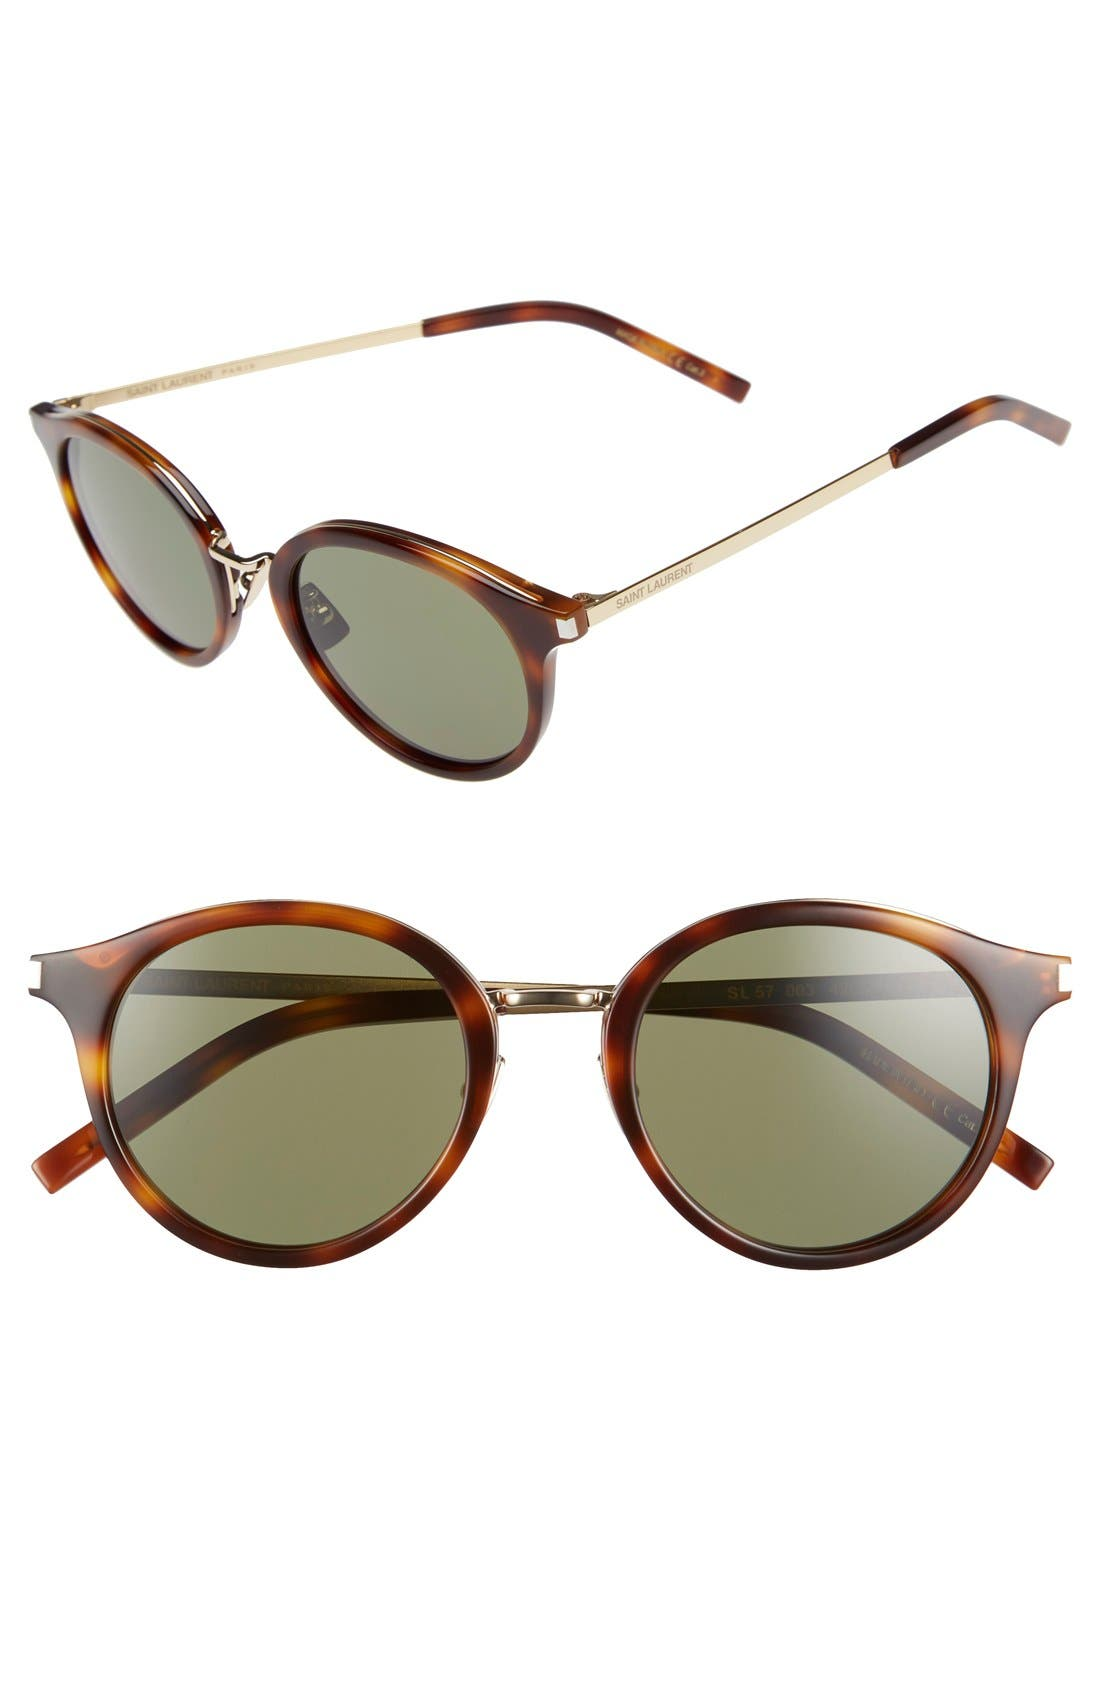 Main Image - Saint Laurent 49mm Round Sunglasses